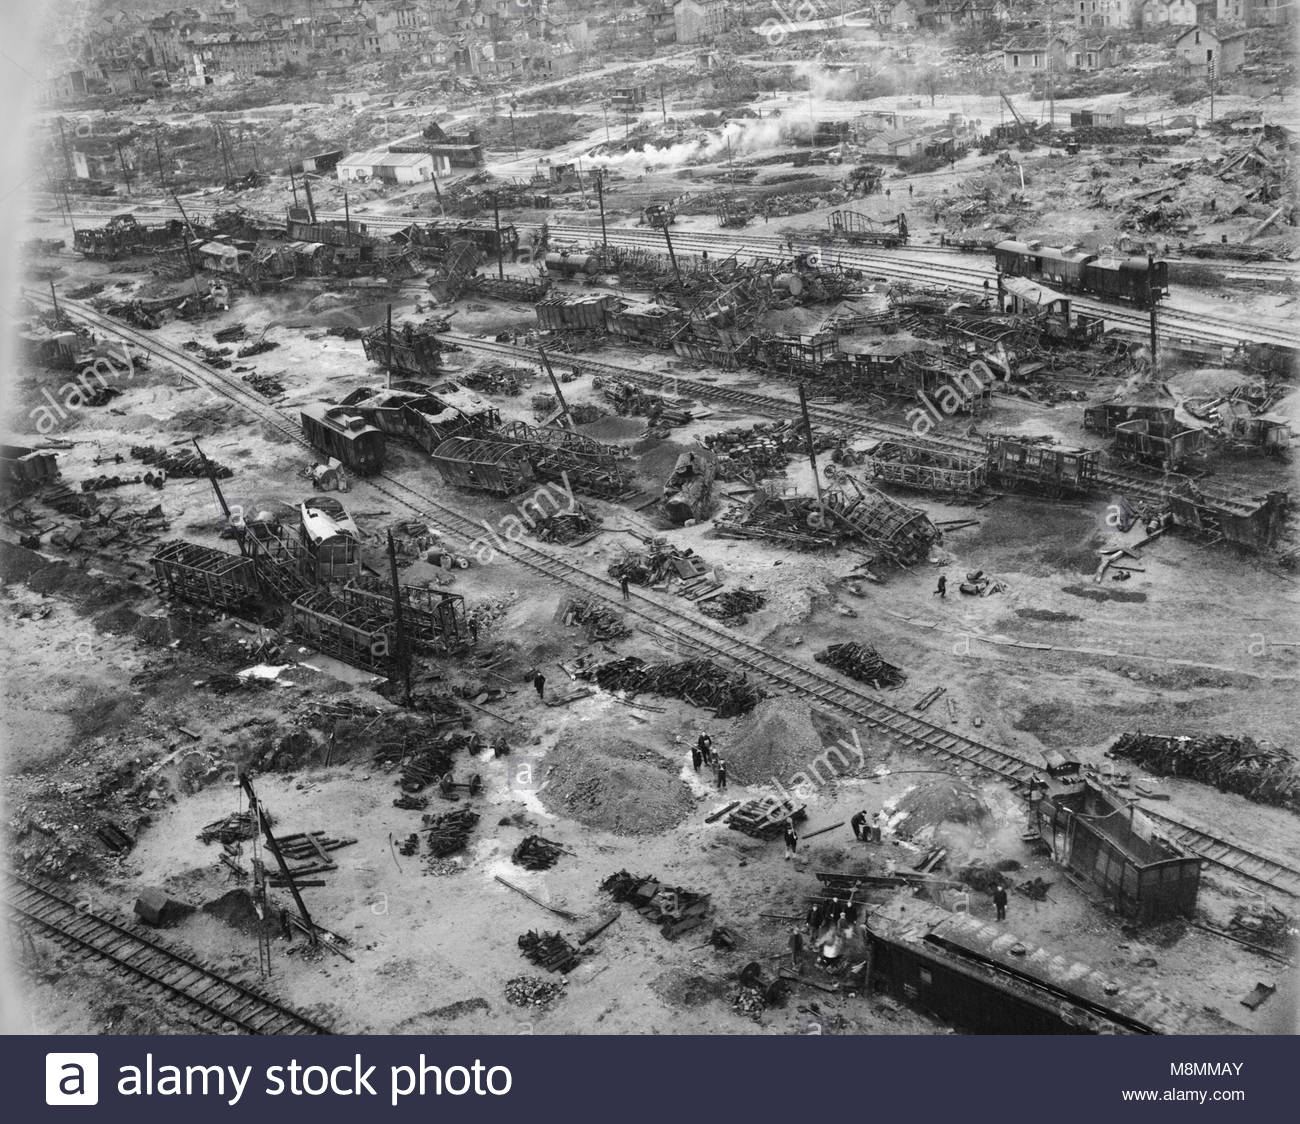 Royal Air Force Bomber Command 1942 1945 Low Level Oblique Aerial Photograph